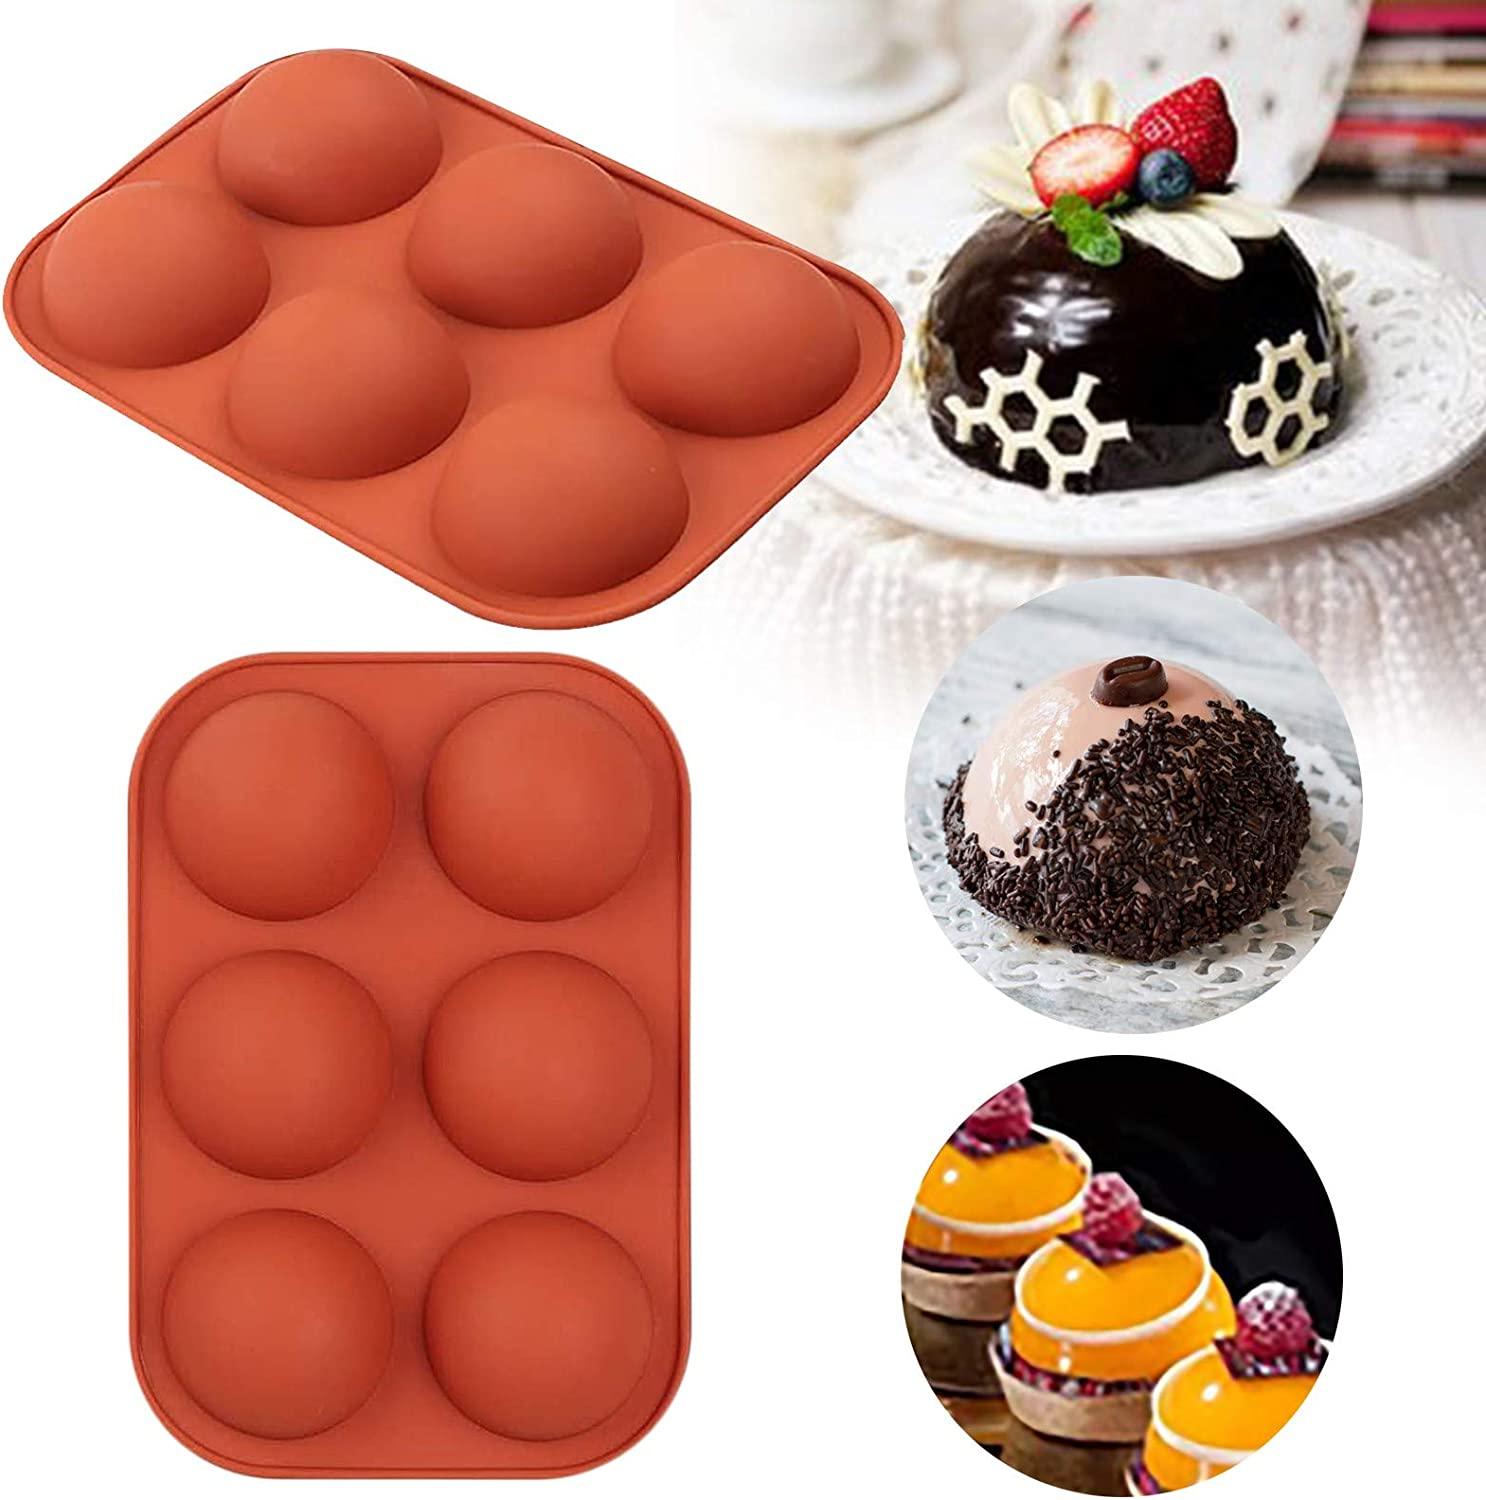 Silicone Mold Chocolate Soap Maker Cake Pastry Kitchen Baking Tools LP